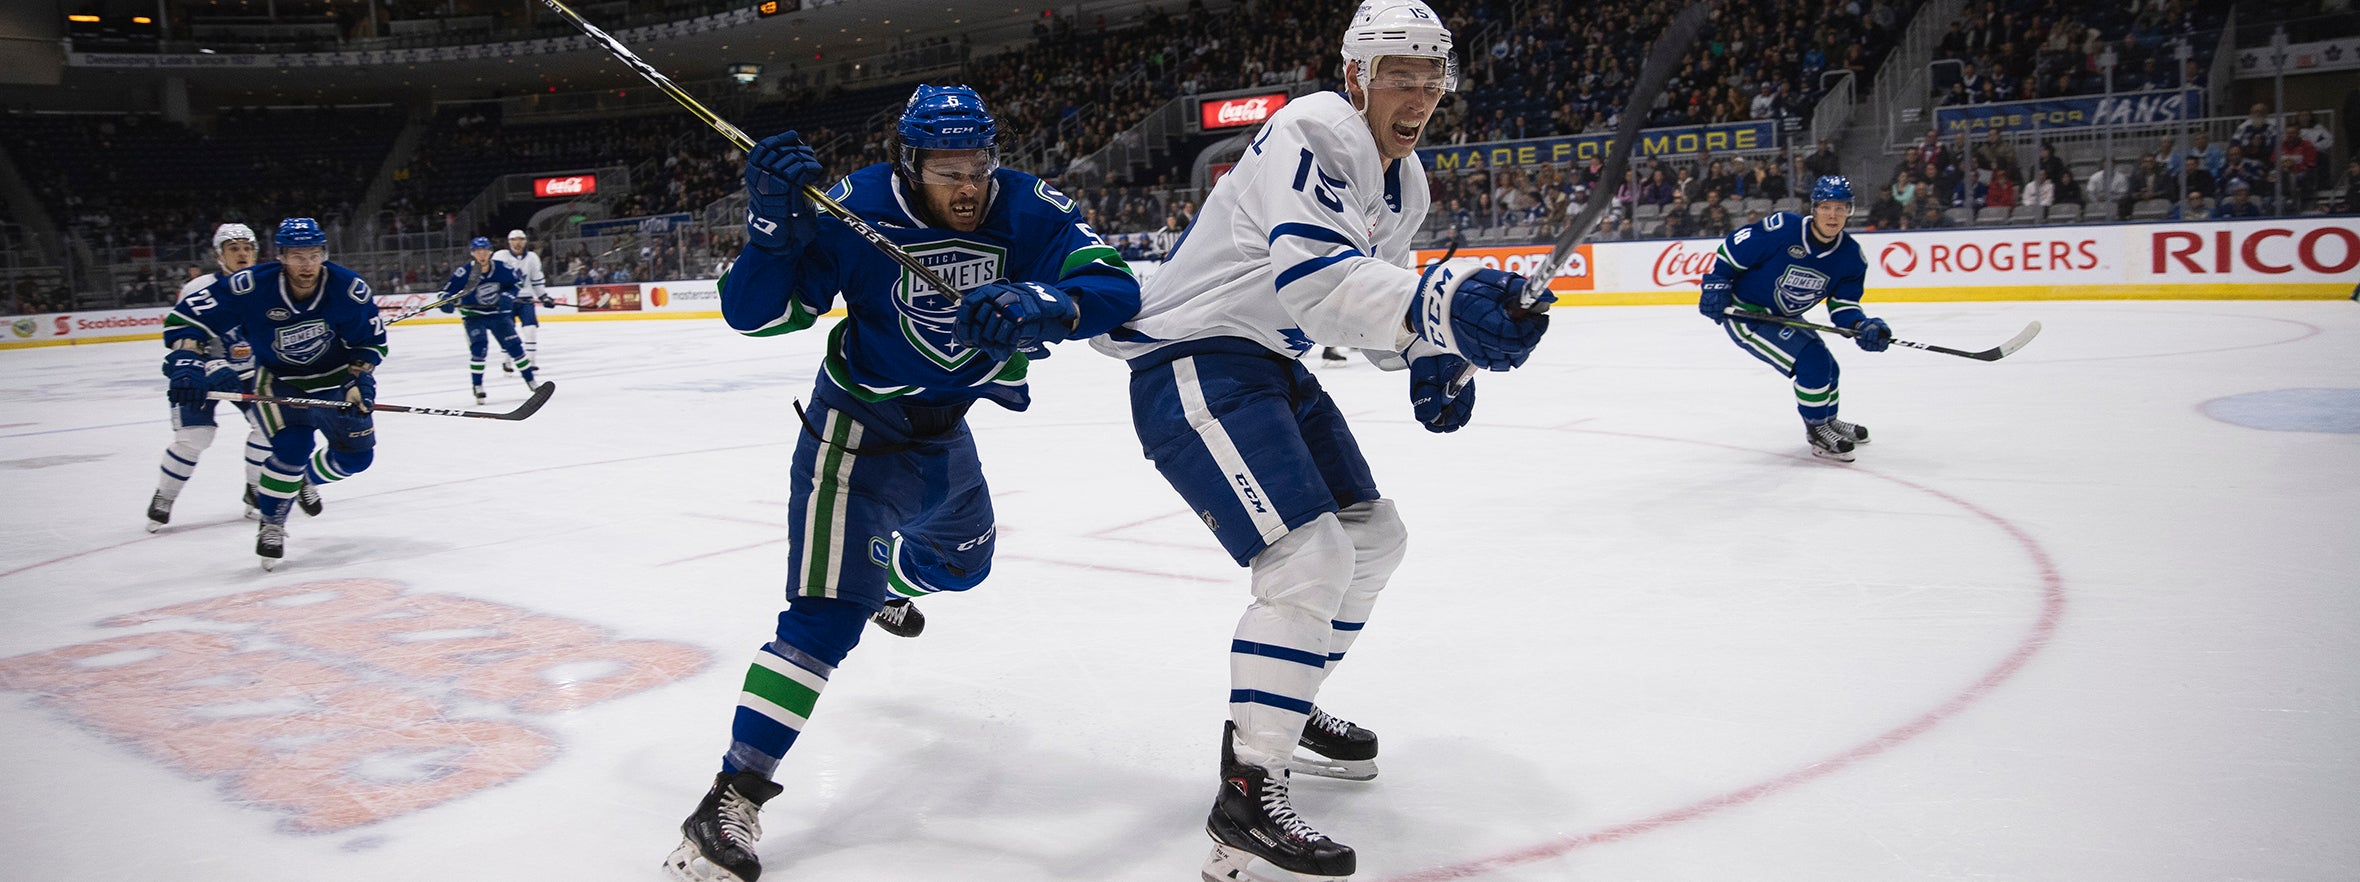 COMETS OFFENSE COMPLETES WEEKEND SWEEP OF TORONTO